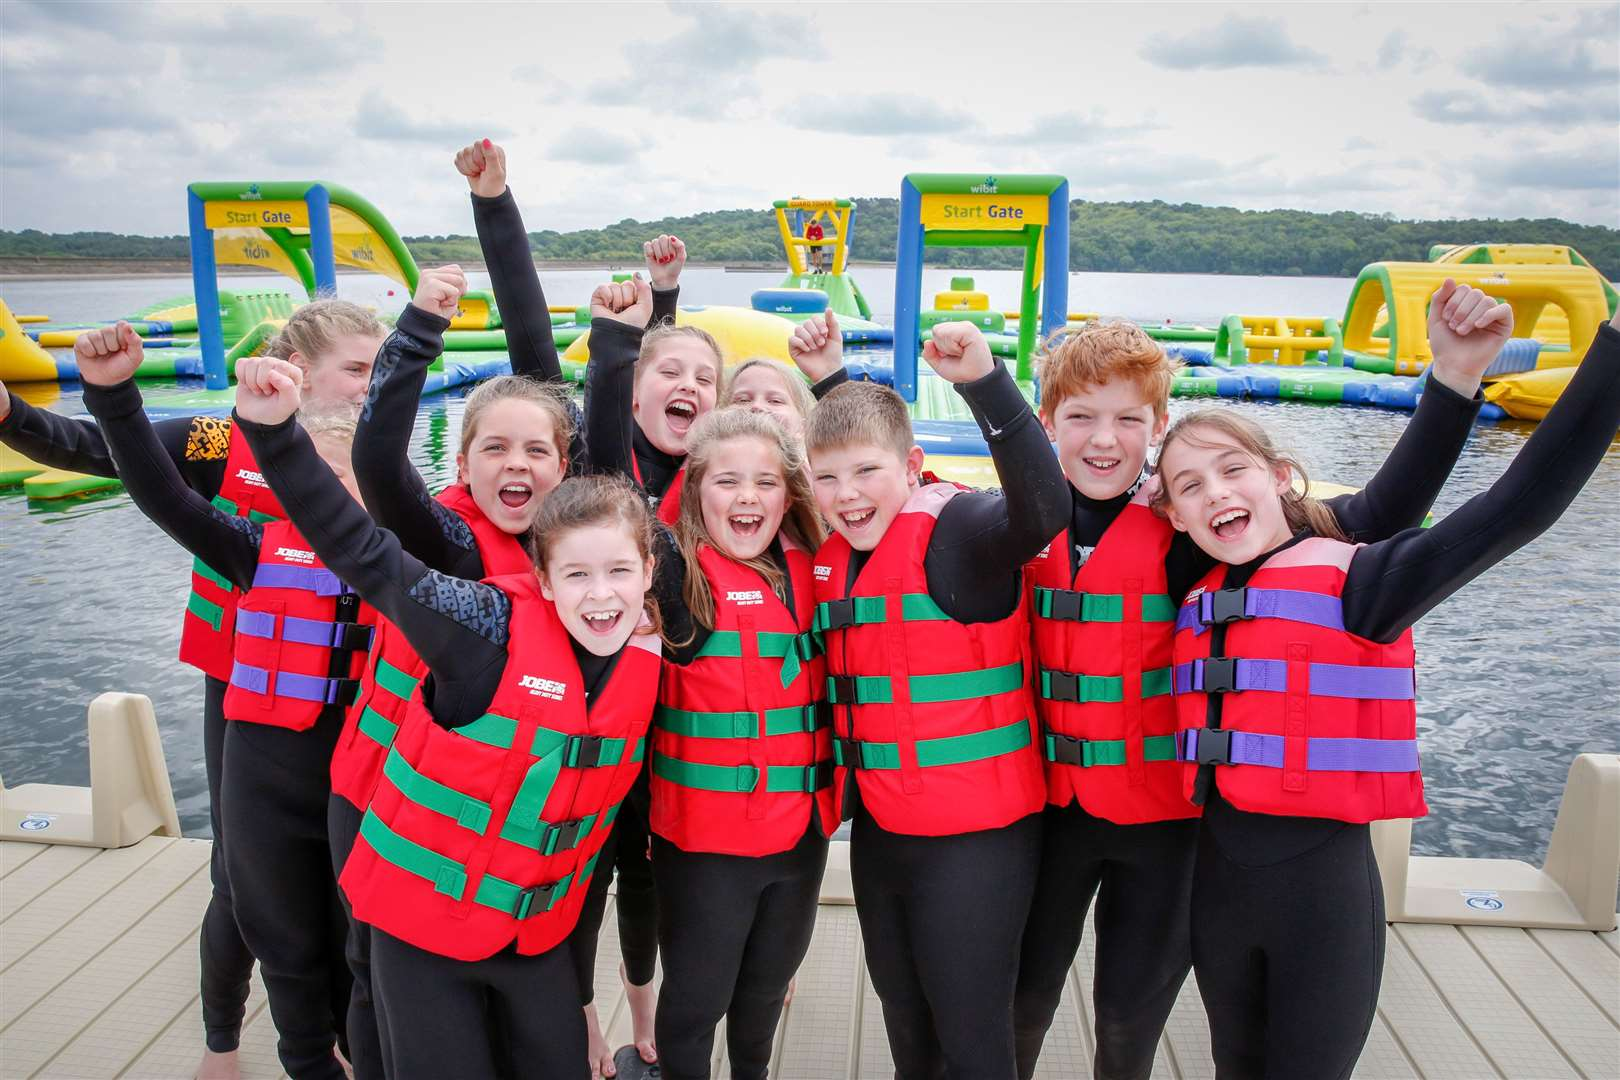 Total Wipeout style attraction at Bewl Water